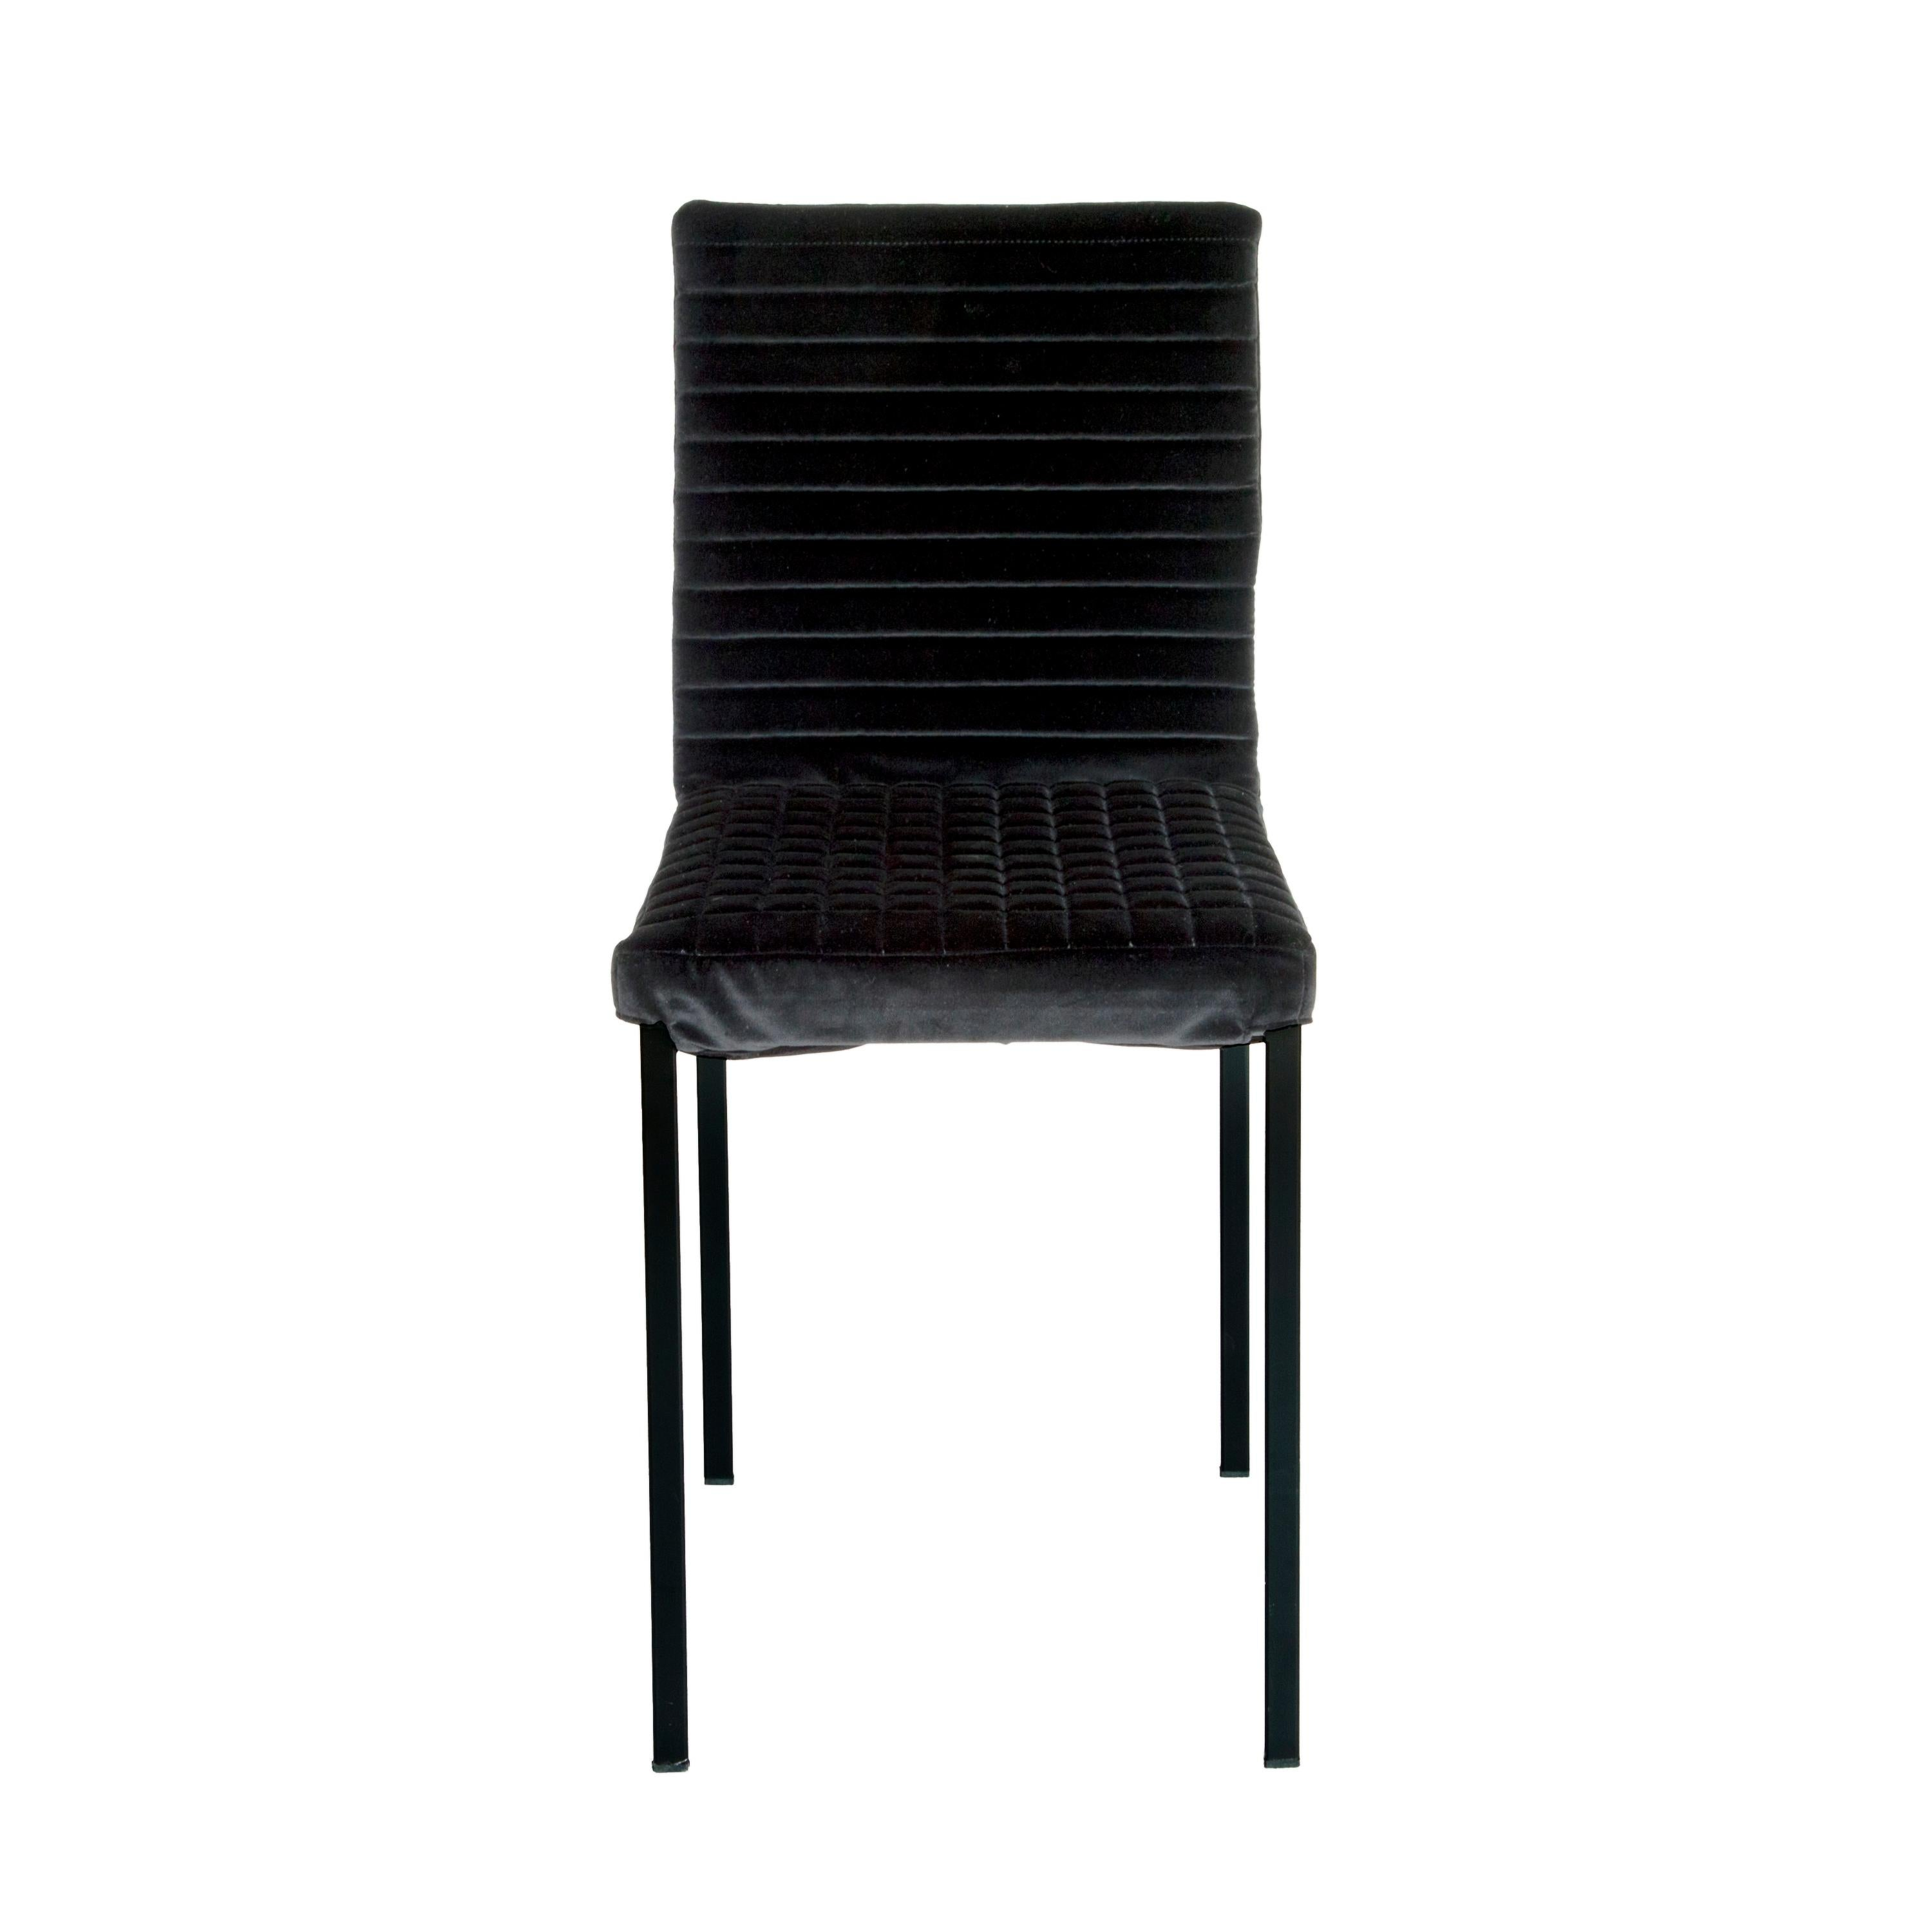 Contemporary Tanit Soft Chair with Black Velvet Cover